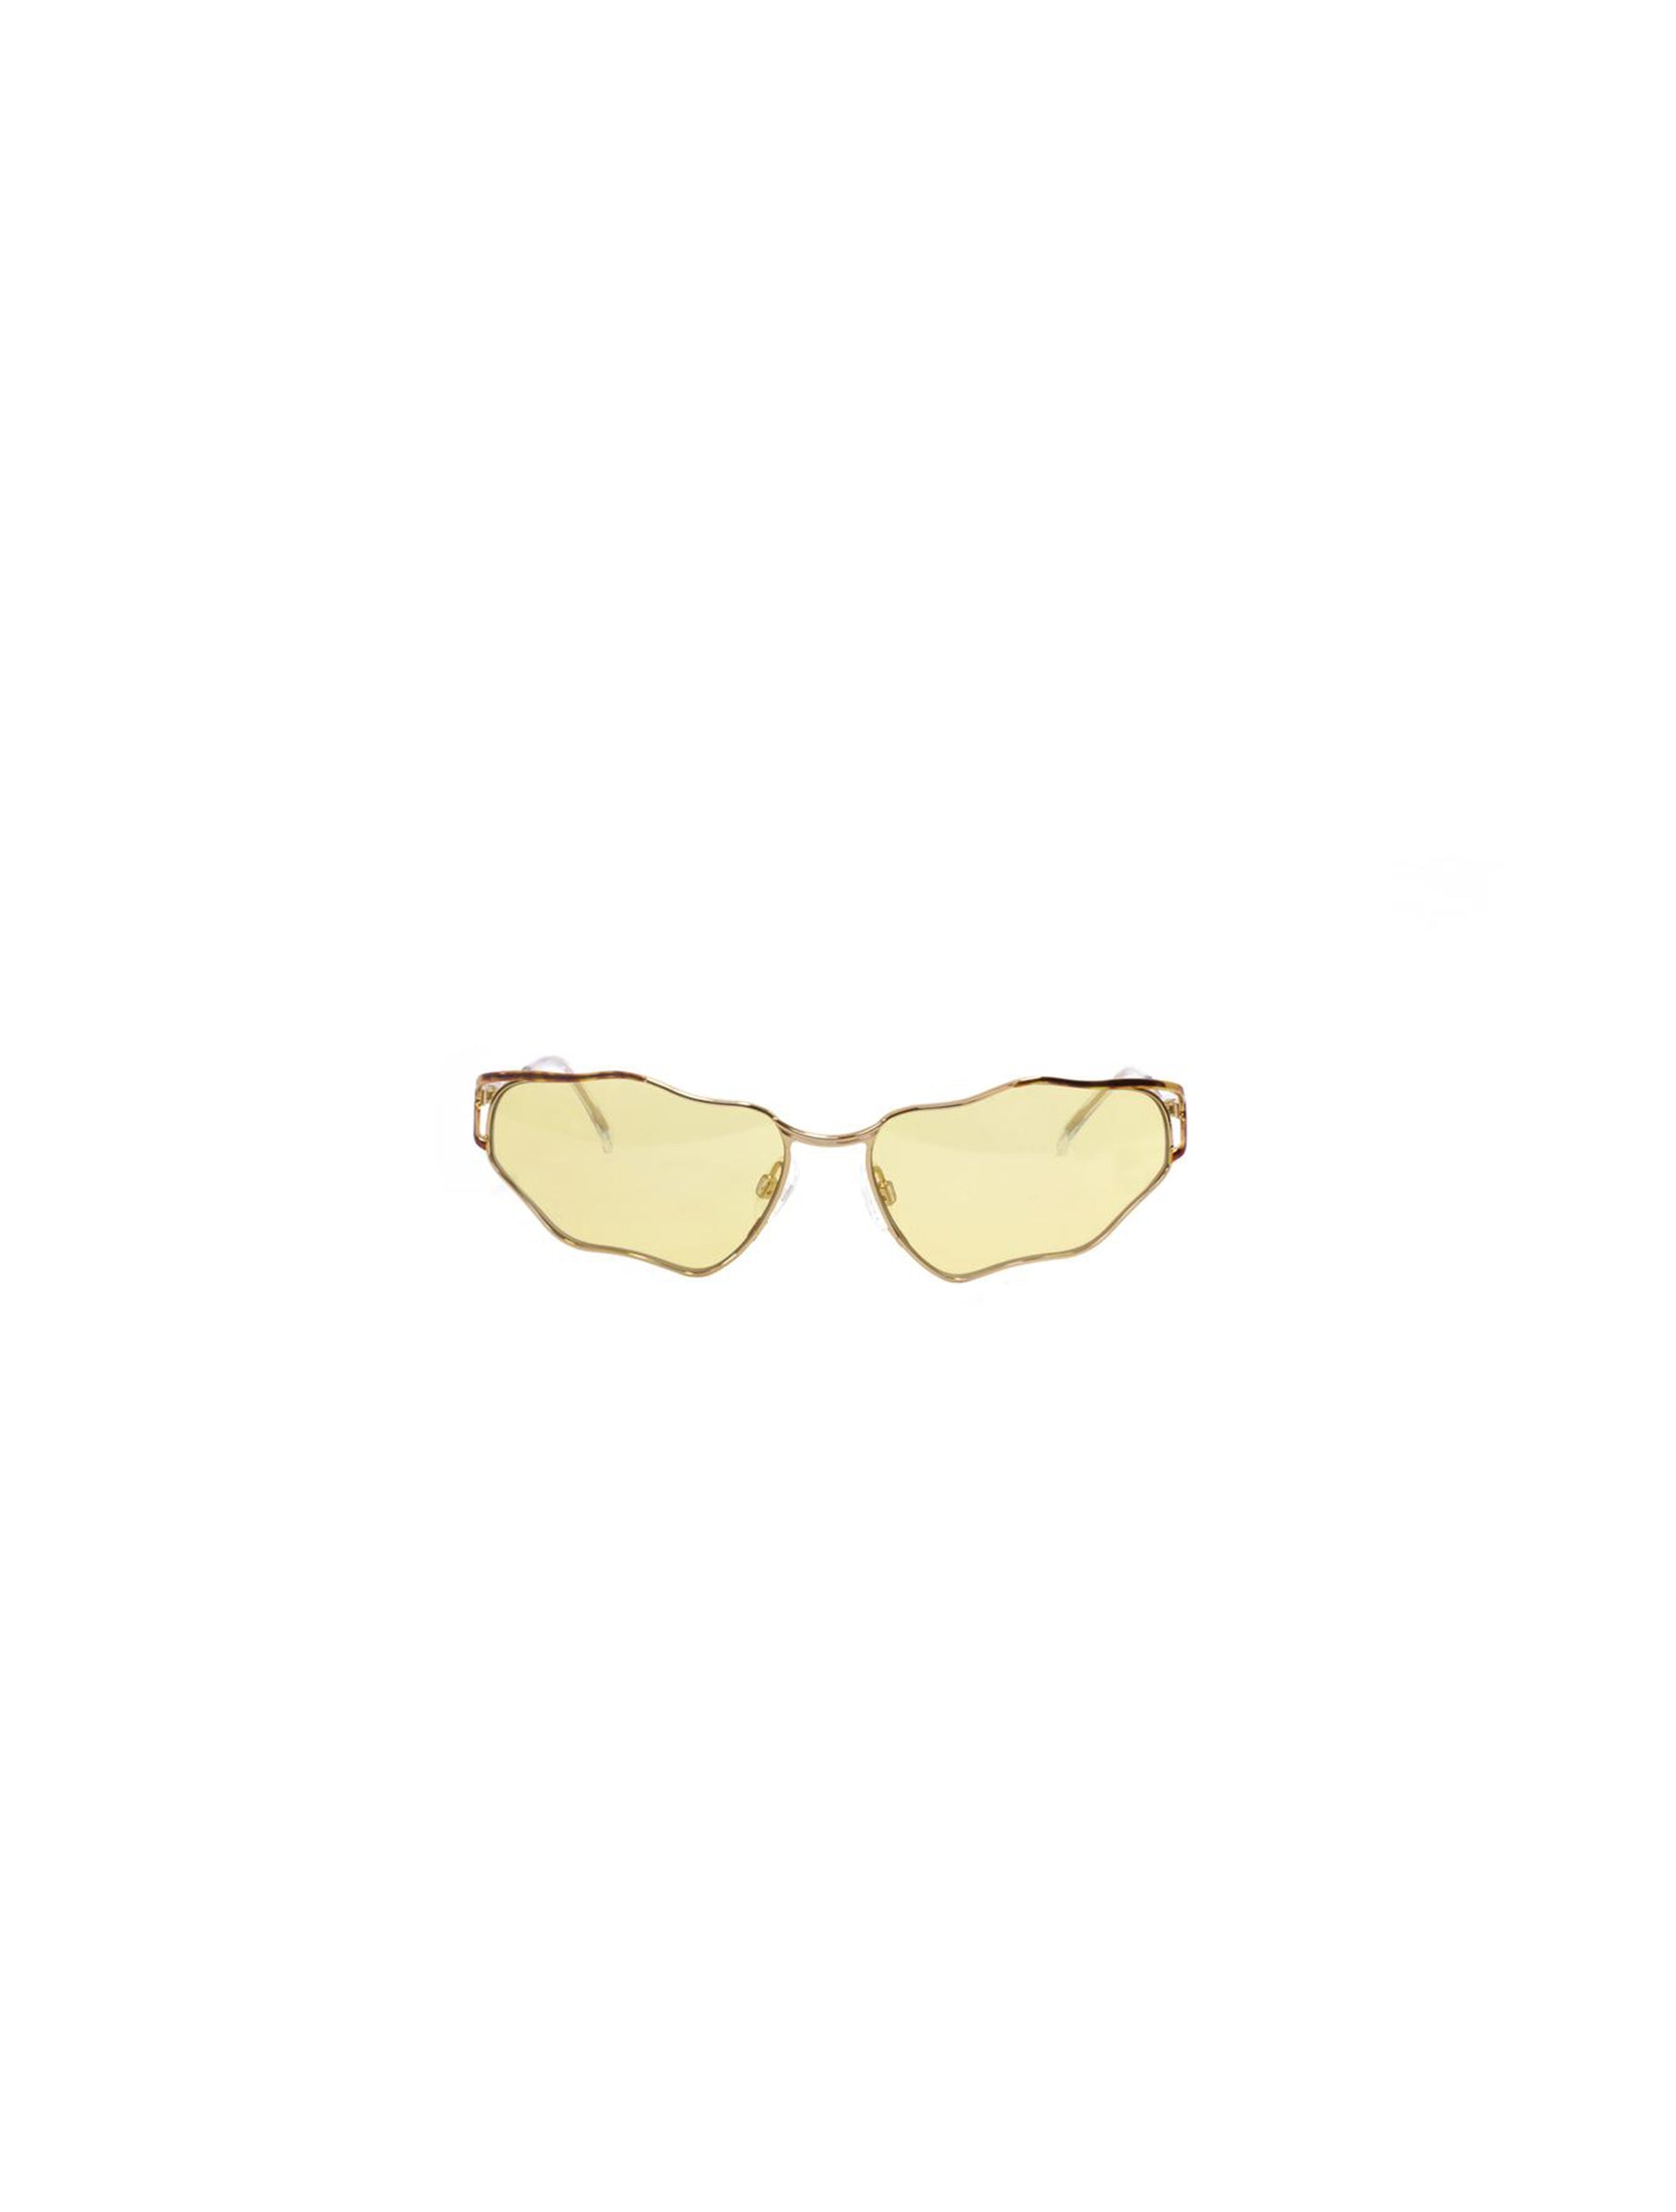 Limited Edition Yellow Sunglasses